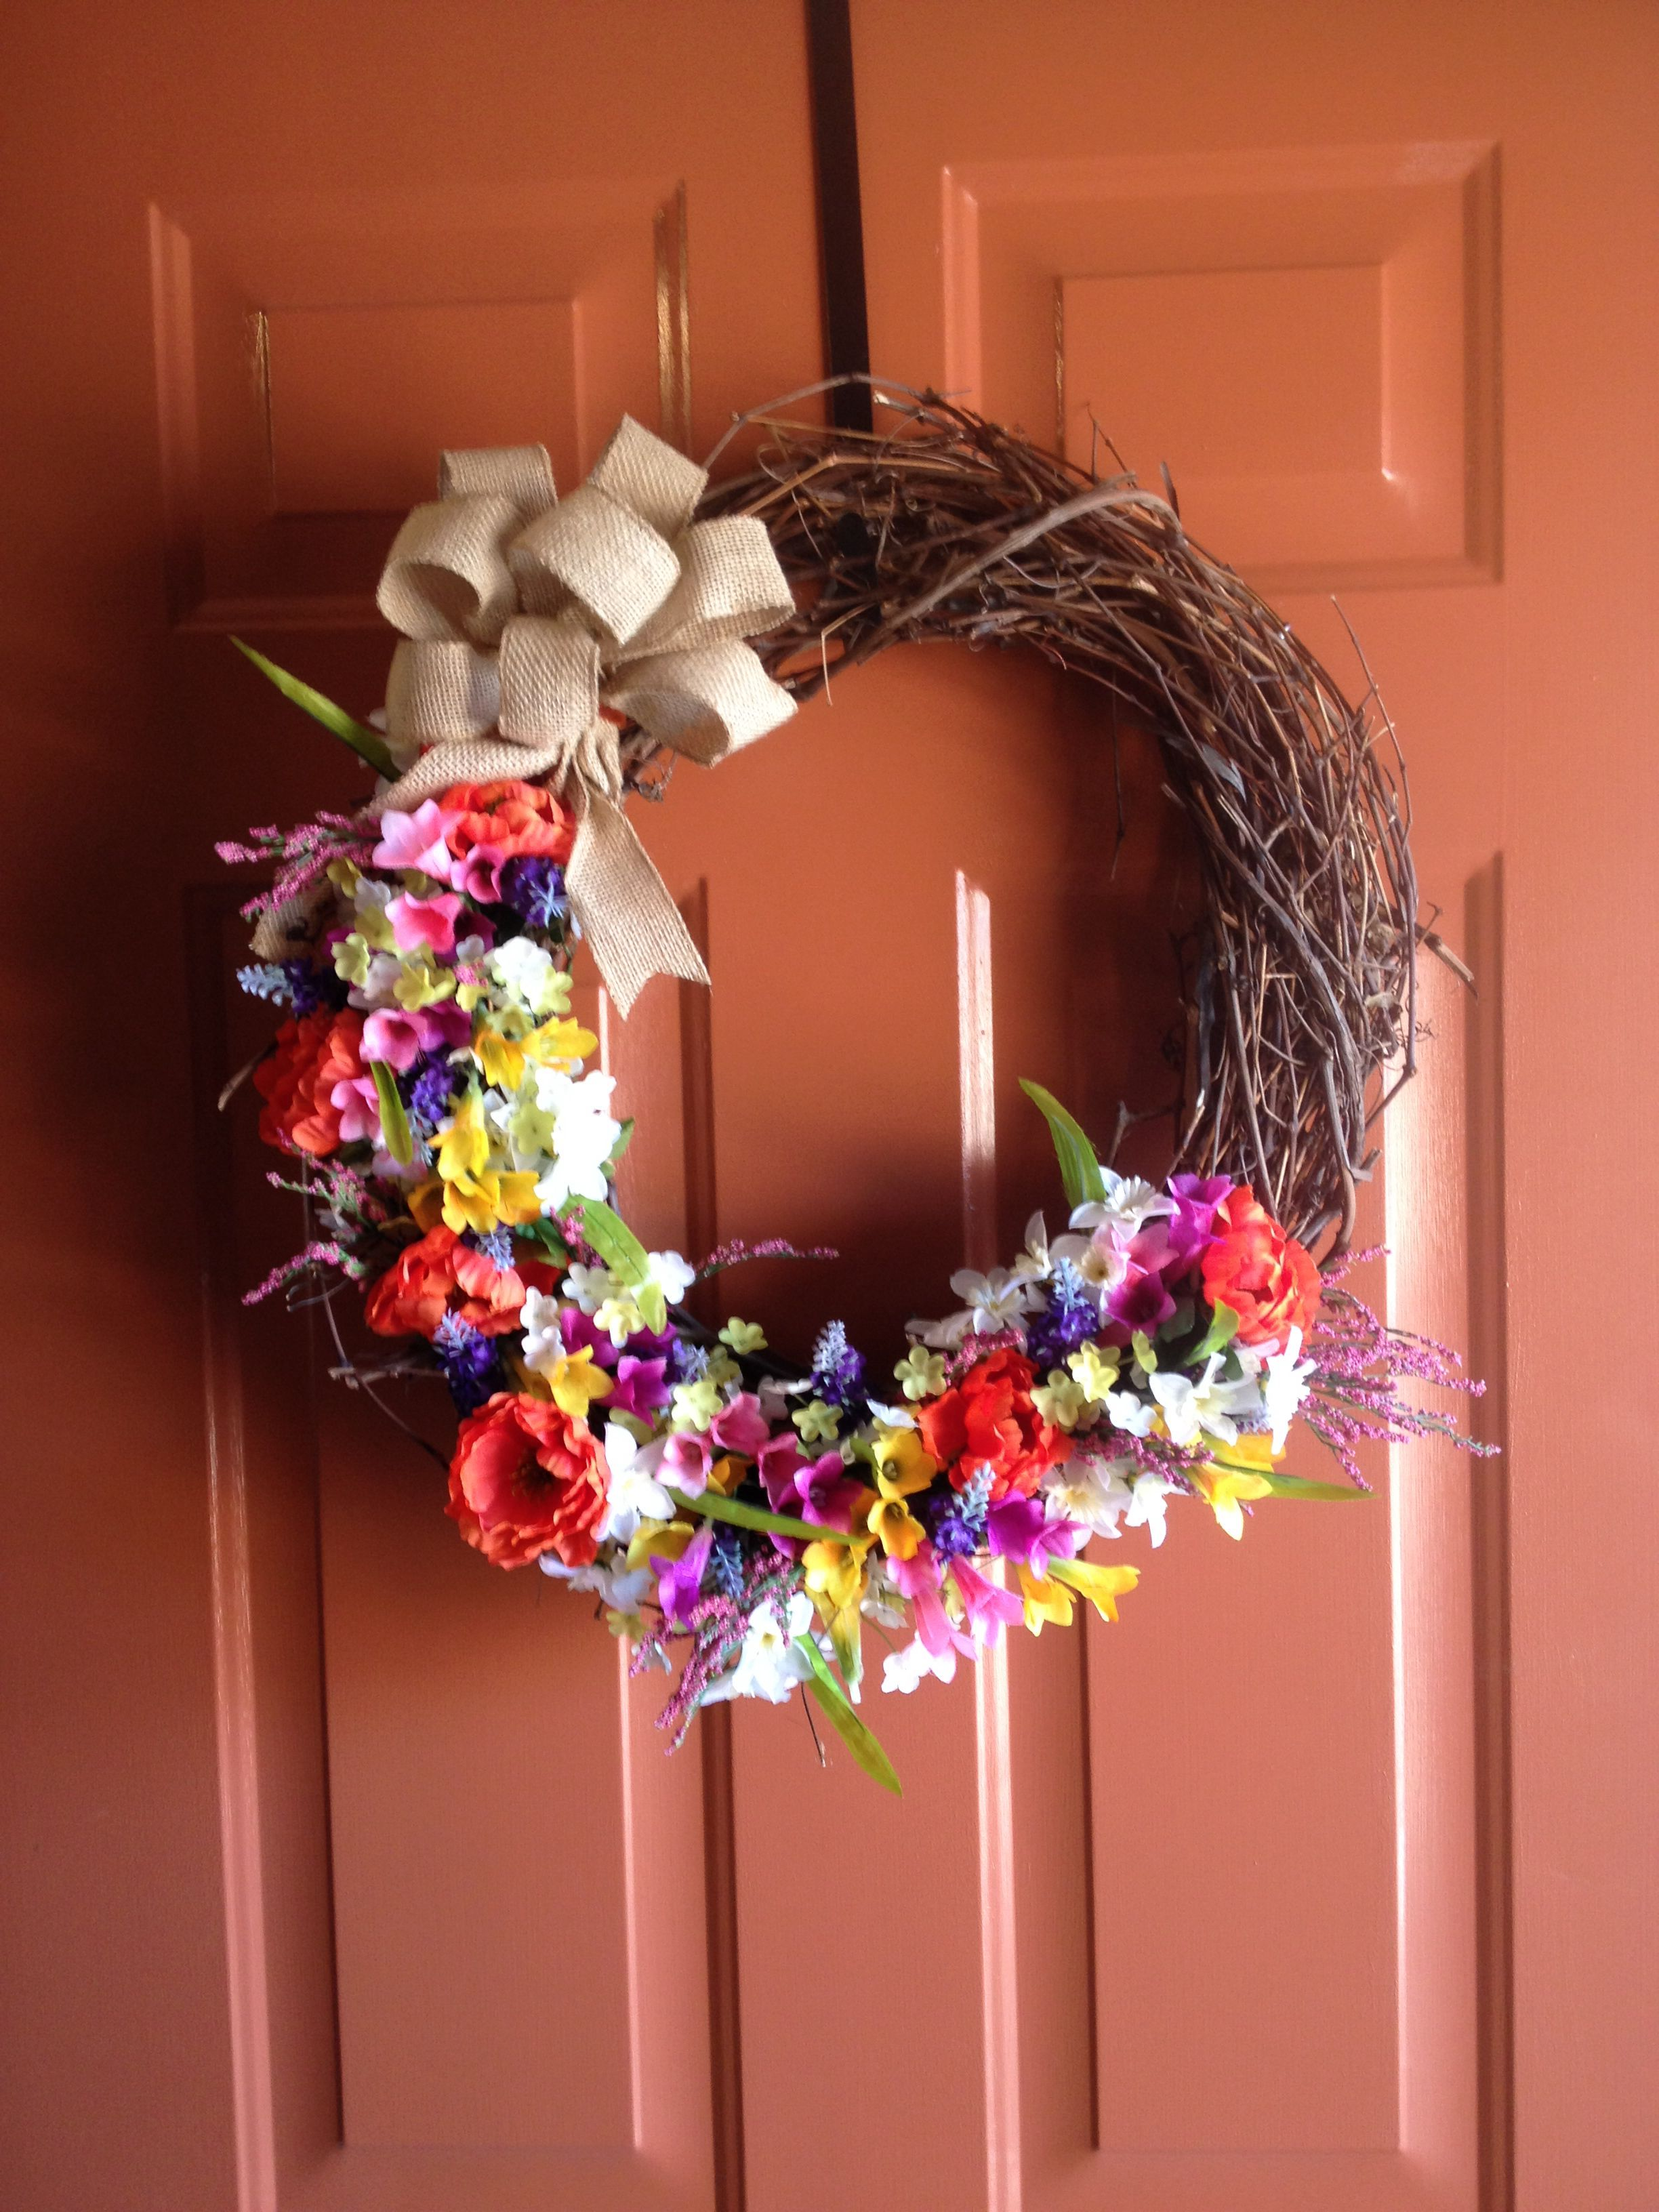 Spring wreath inspiration! #homemade #spring #wreaths